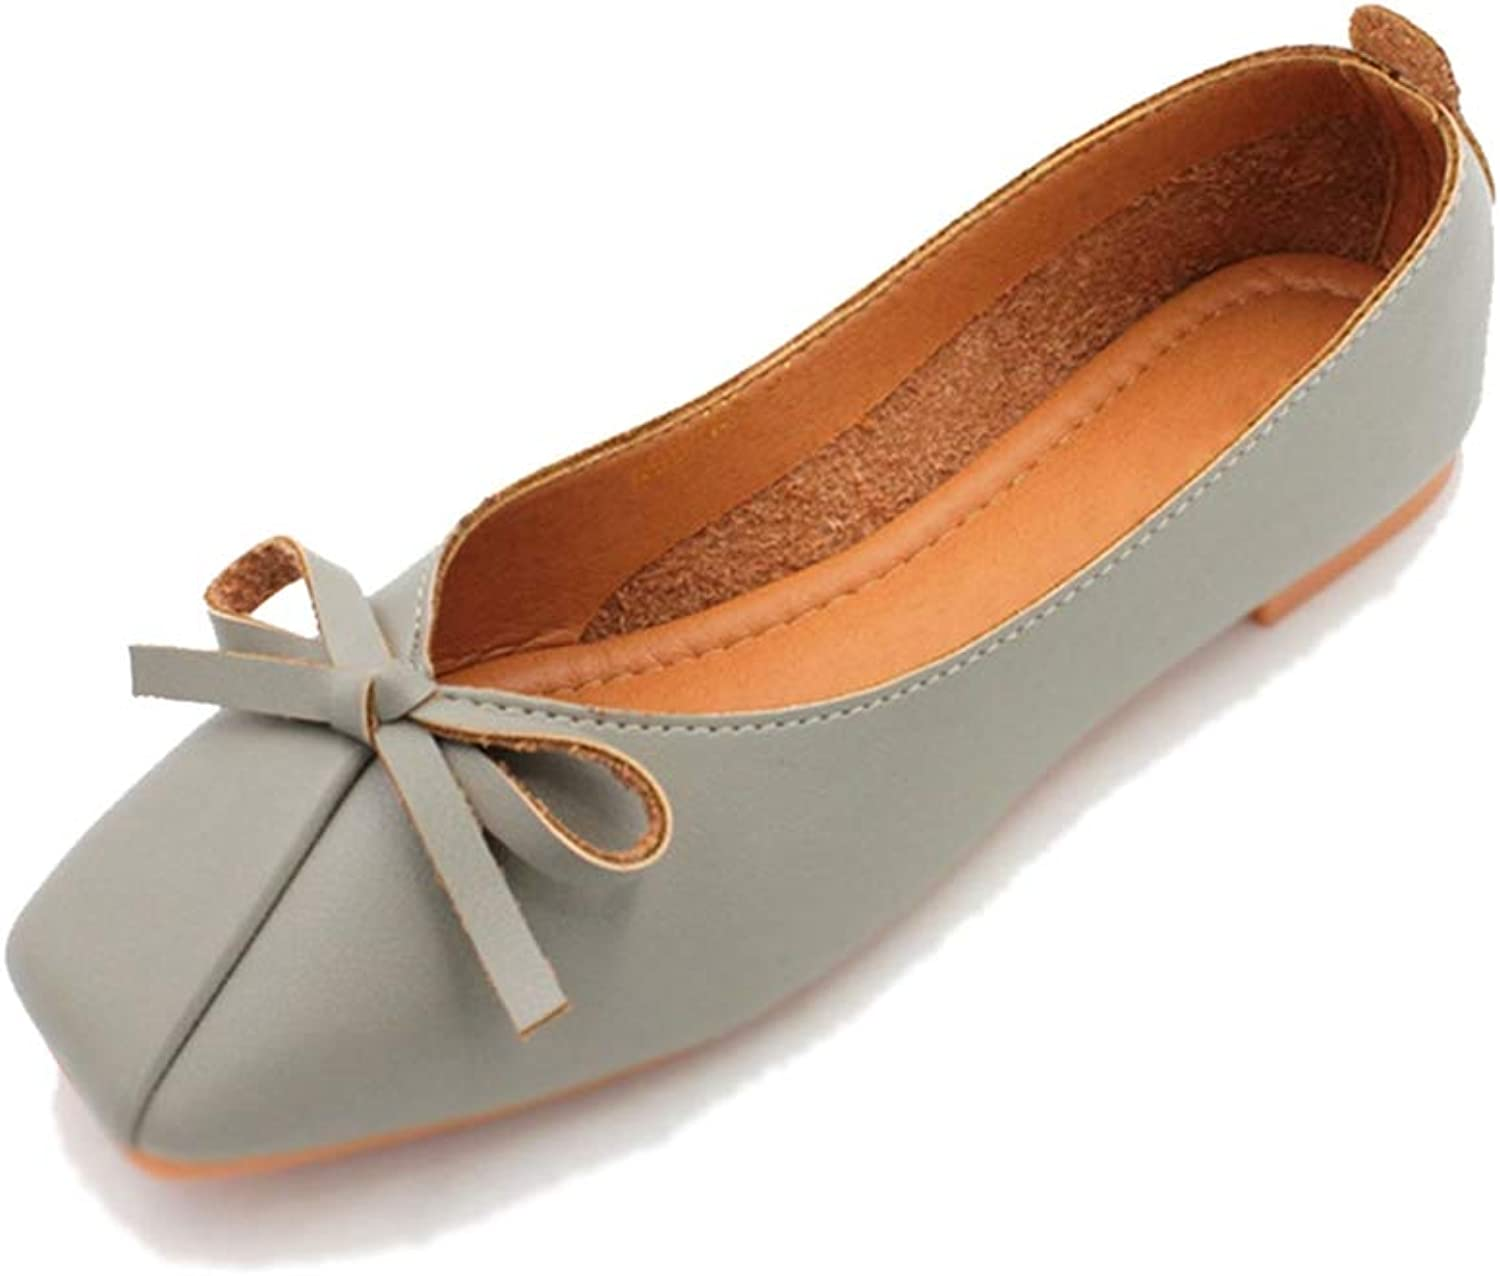 Phil Betty Women Flats shoes Square Toe Soft Soles Slip-On Comfort Ballet Flats shoes